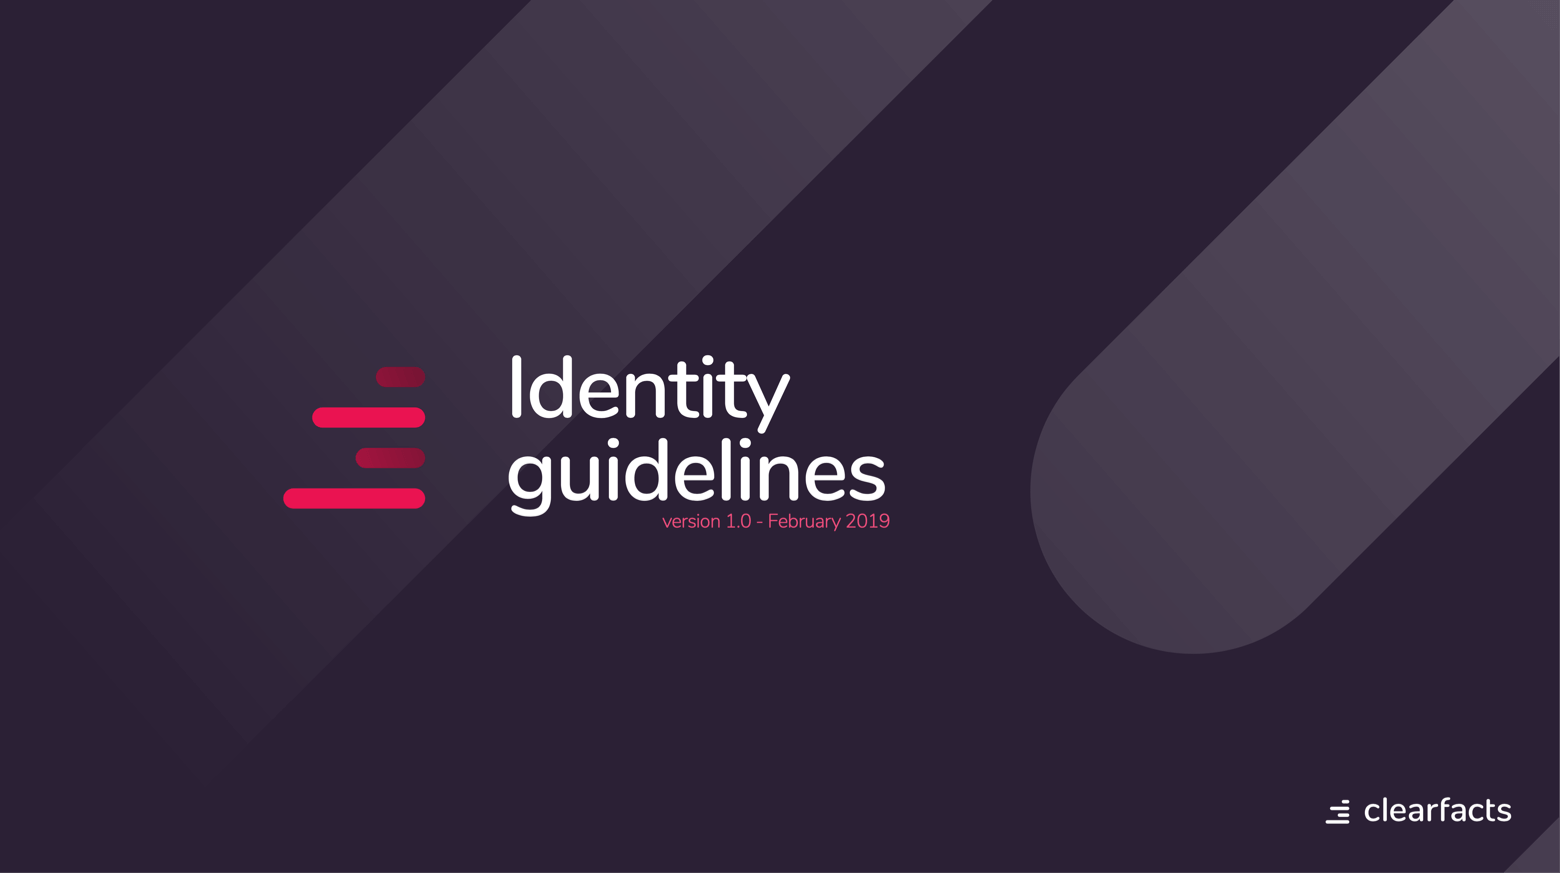 Clearfact identity guidelines - cover showing logo and version